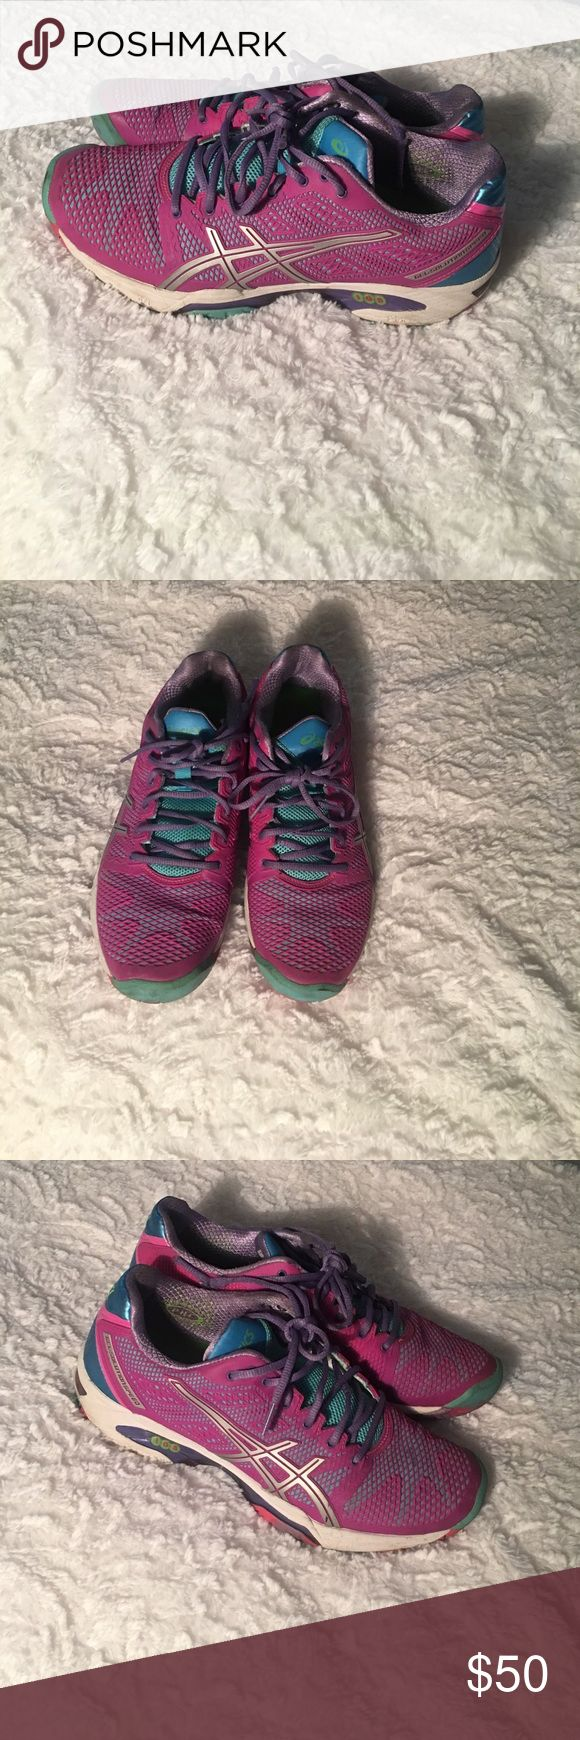 There S A Great Selection Of Asics Models On Sale For Over 40 Off - Asics running gel shoes great conditions barely worn size 9 asics shoes sneakers